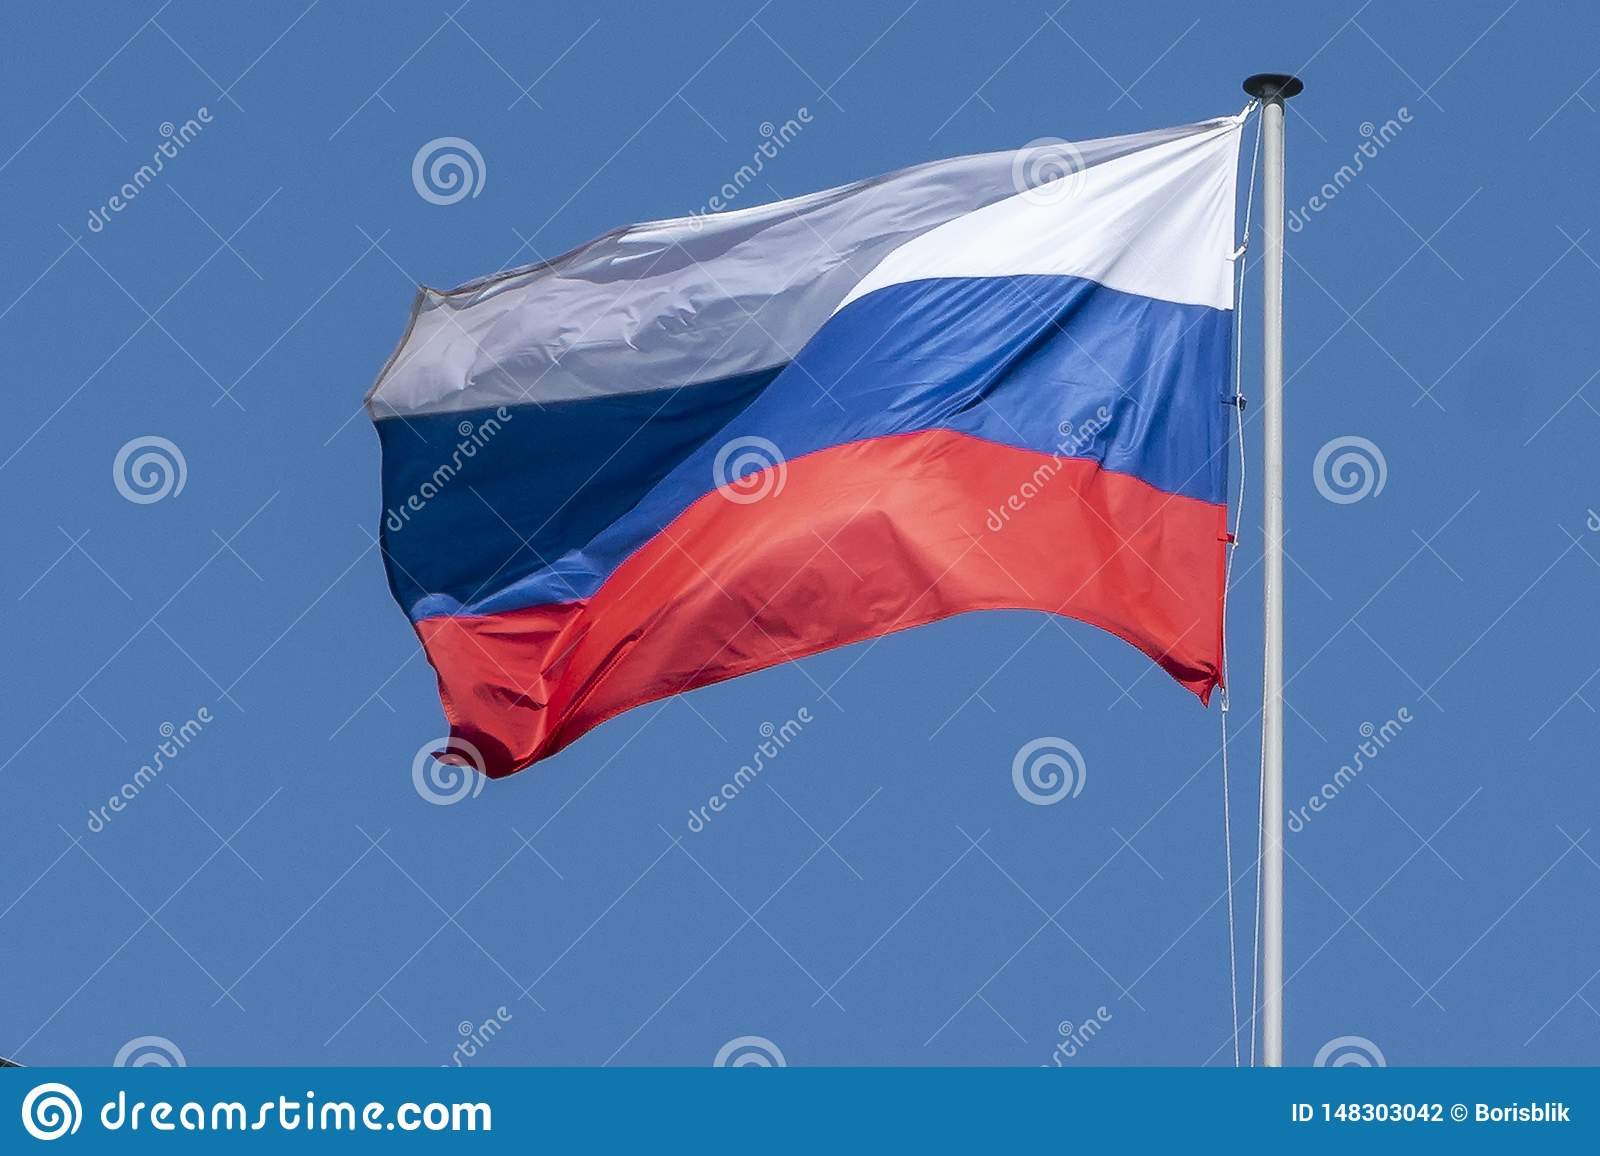 Flag of Russia, the Russian Federation, the tricolor against the blue sky develops in the wind